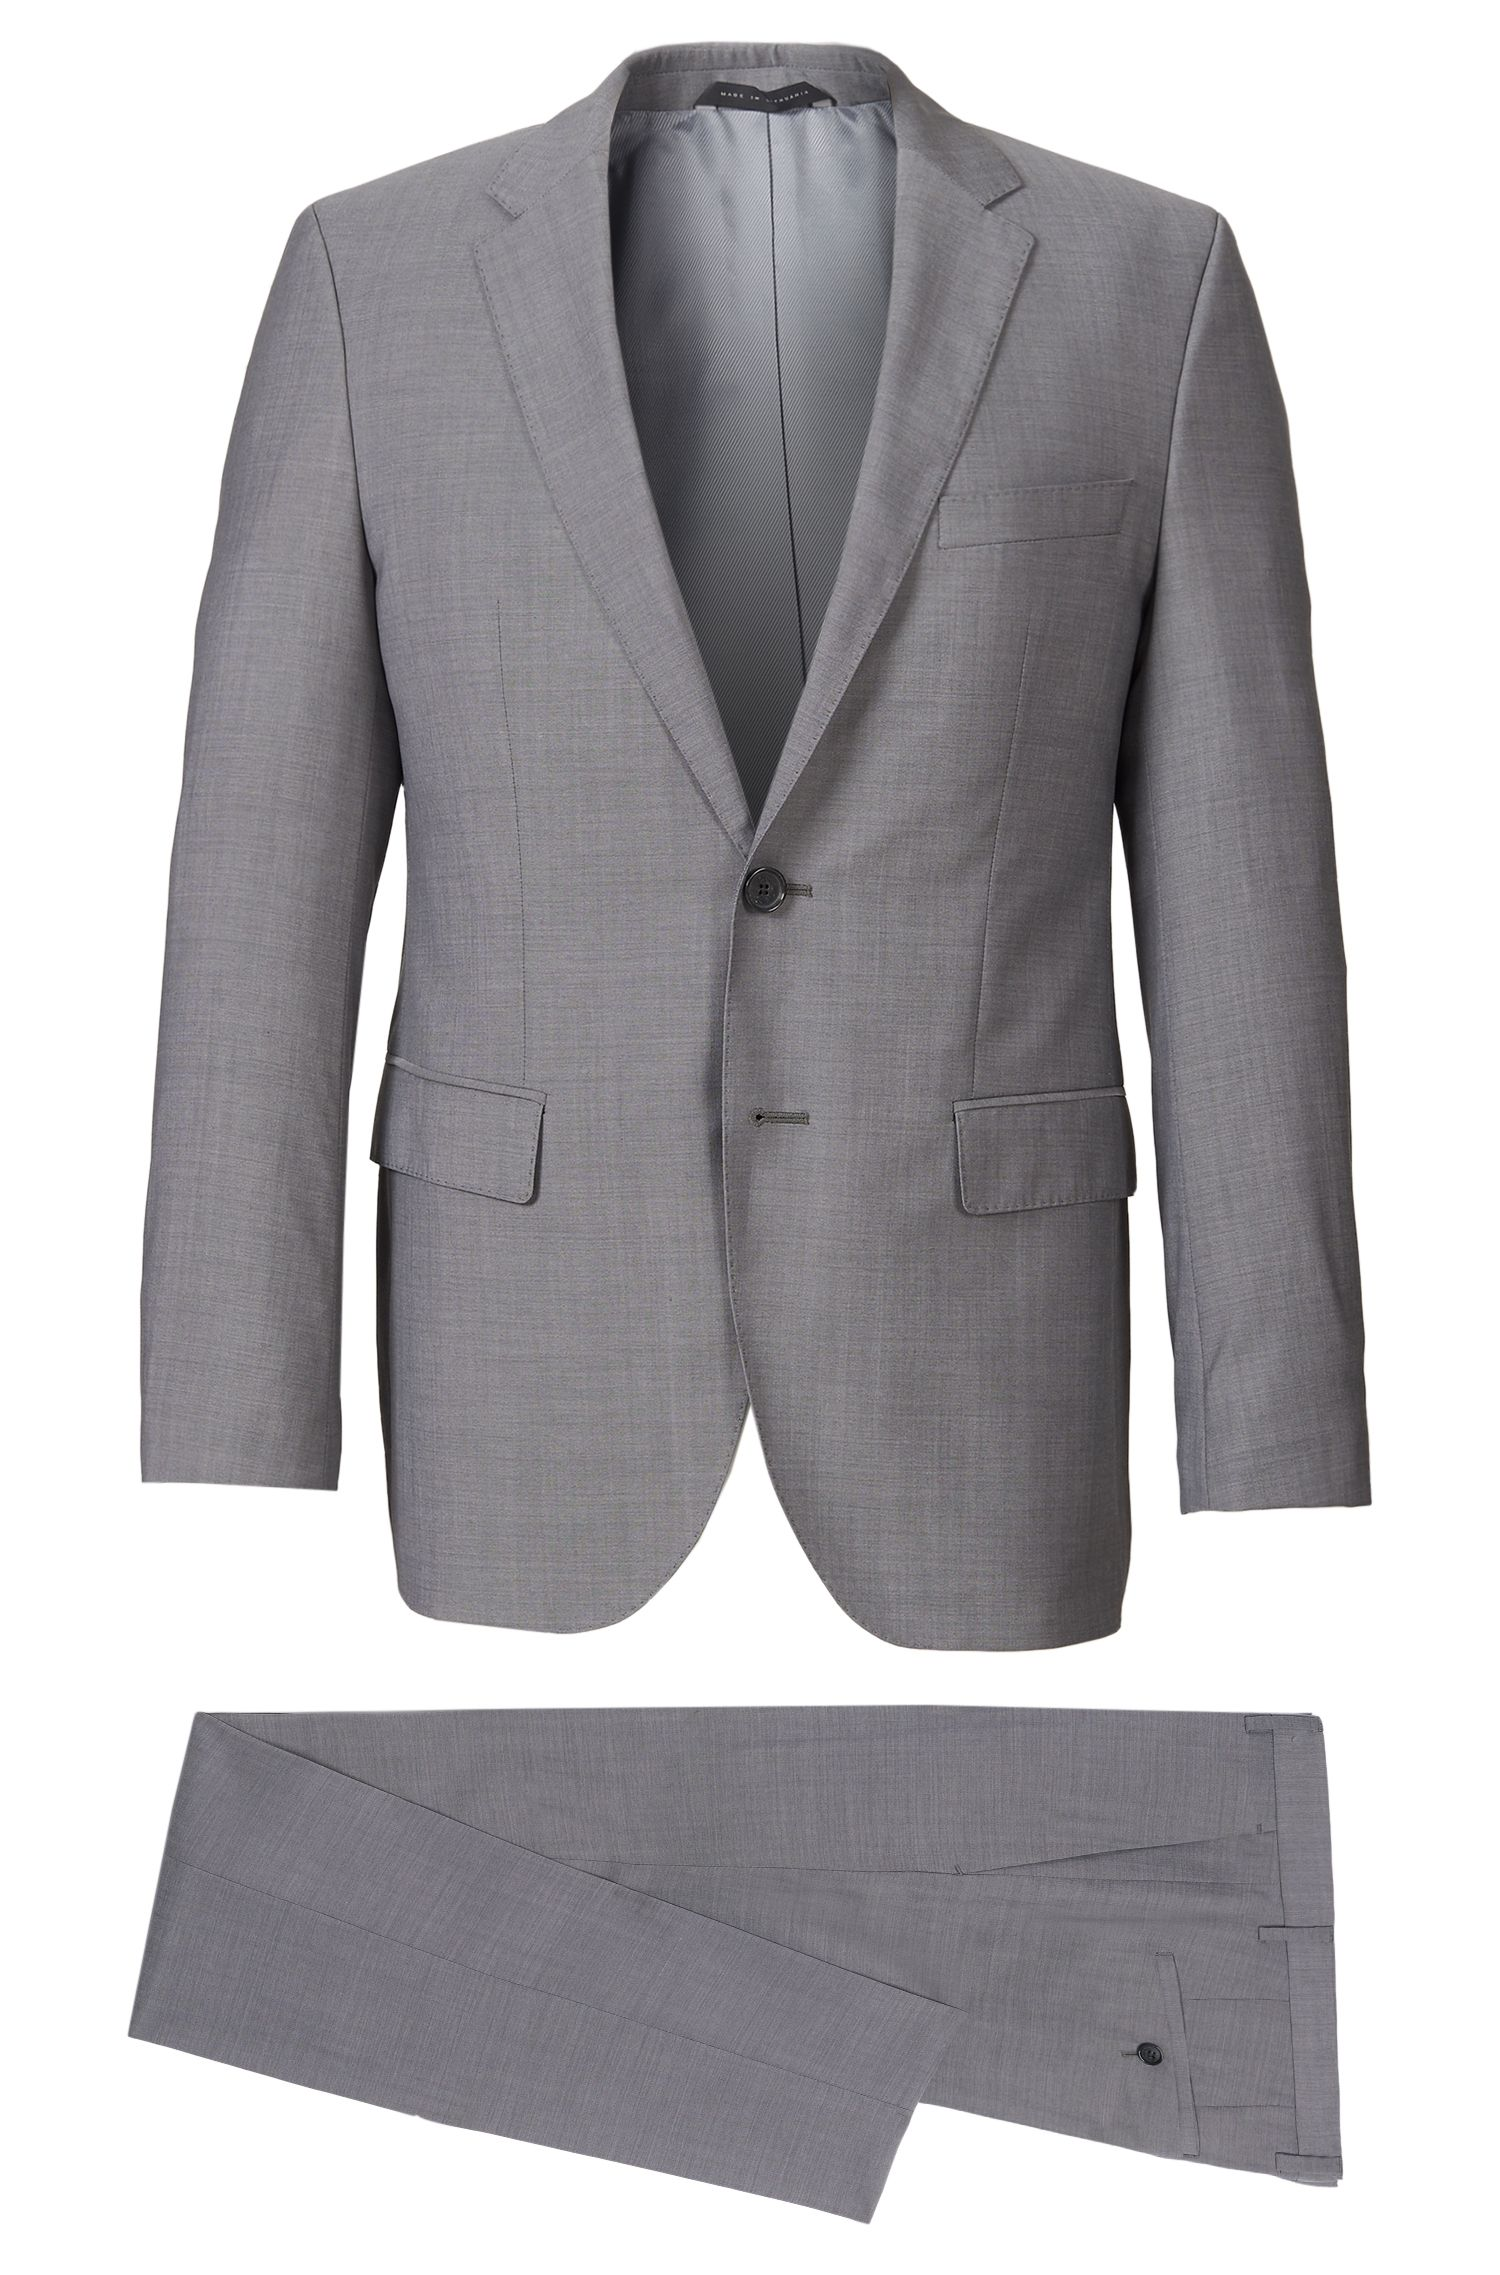 Super 120 Italian Virgin Wool Suit, Regular Fit | The James/Sharp